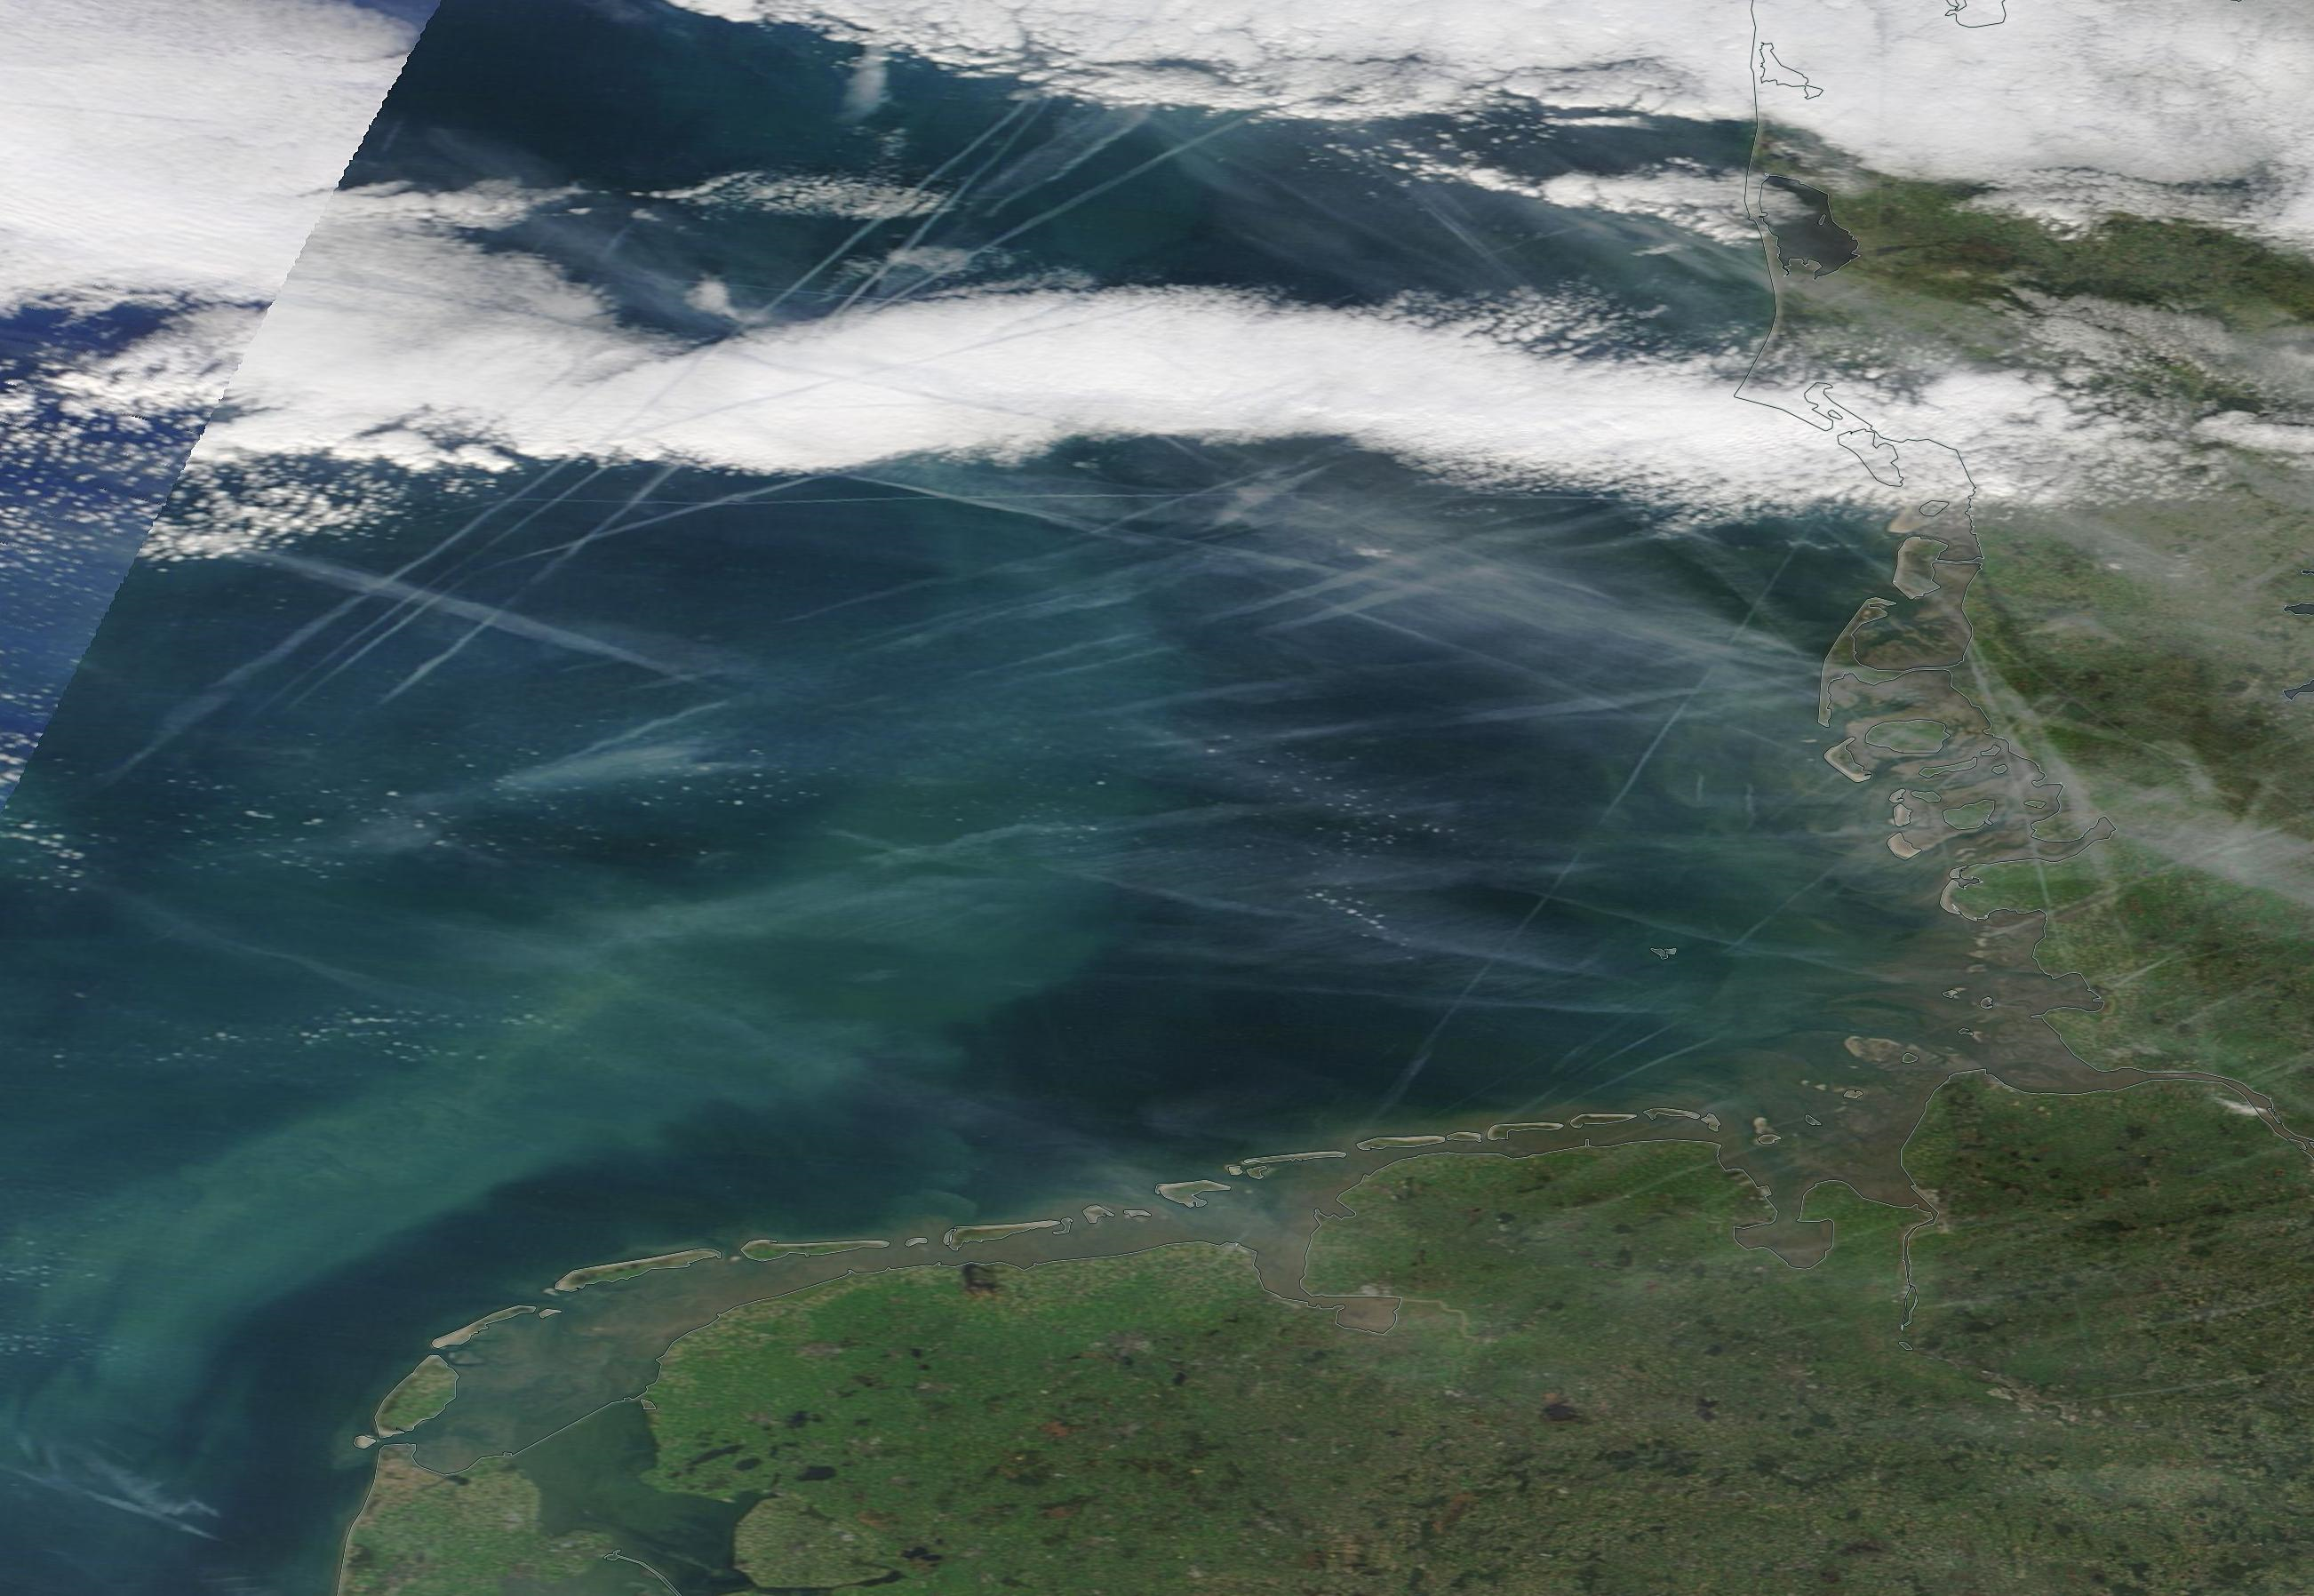 North Sea (south) German Bight, Denmark, Bremen chemtrails. https://go.nasa.gov/36eximi